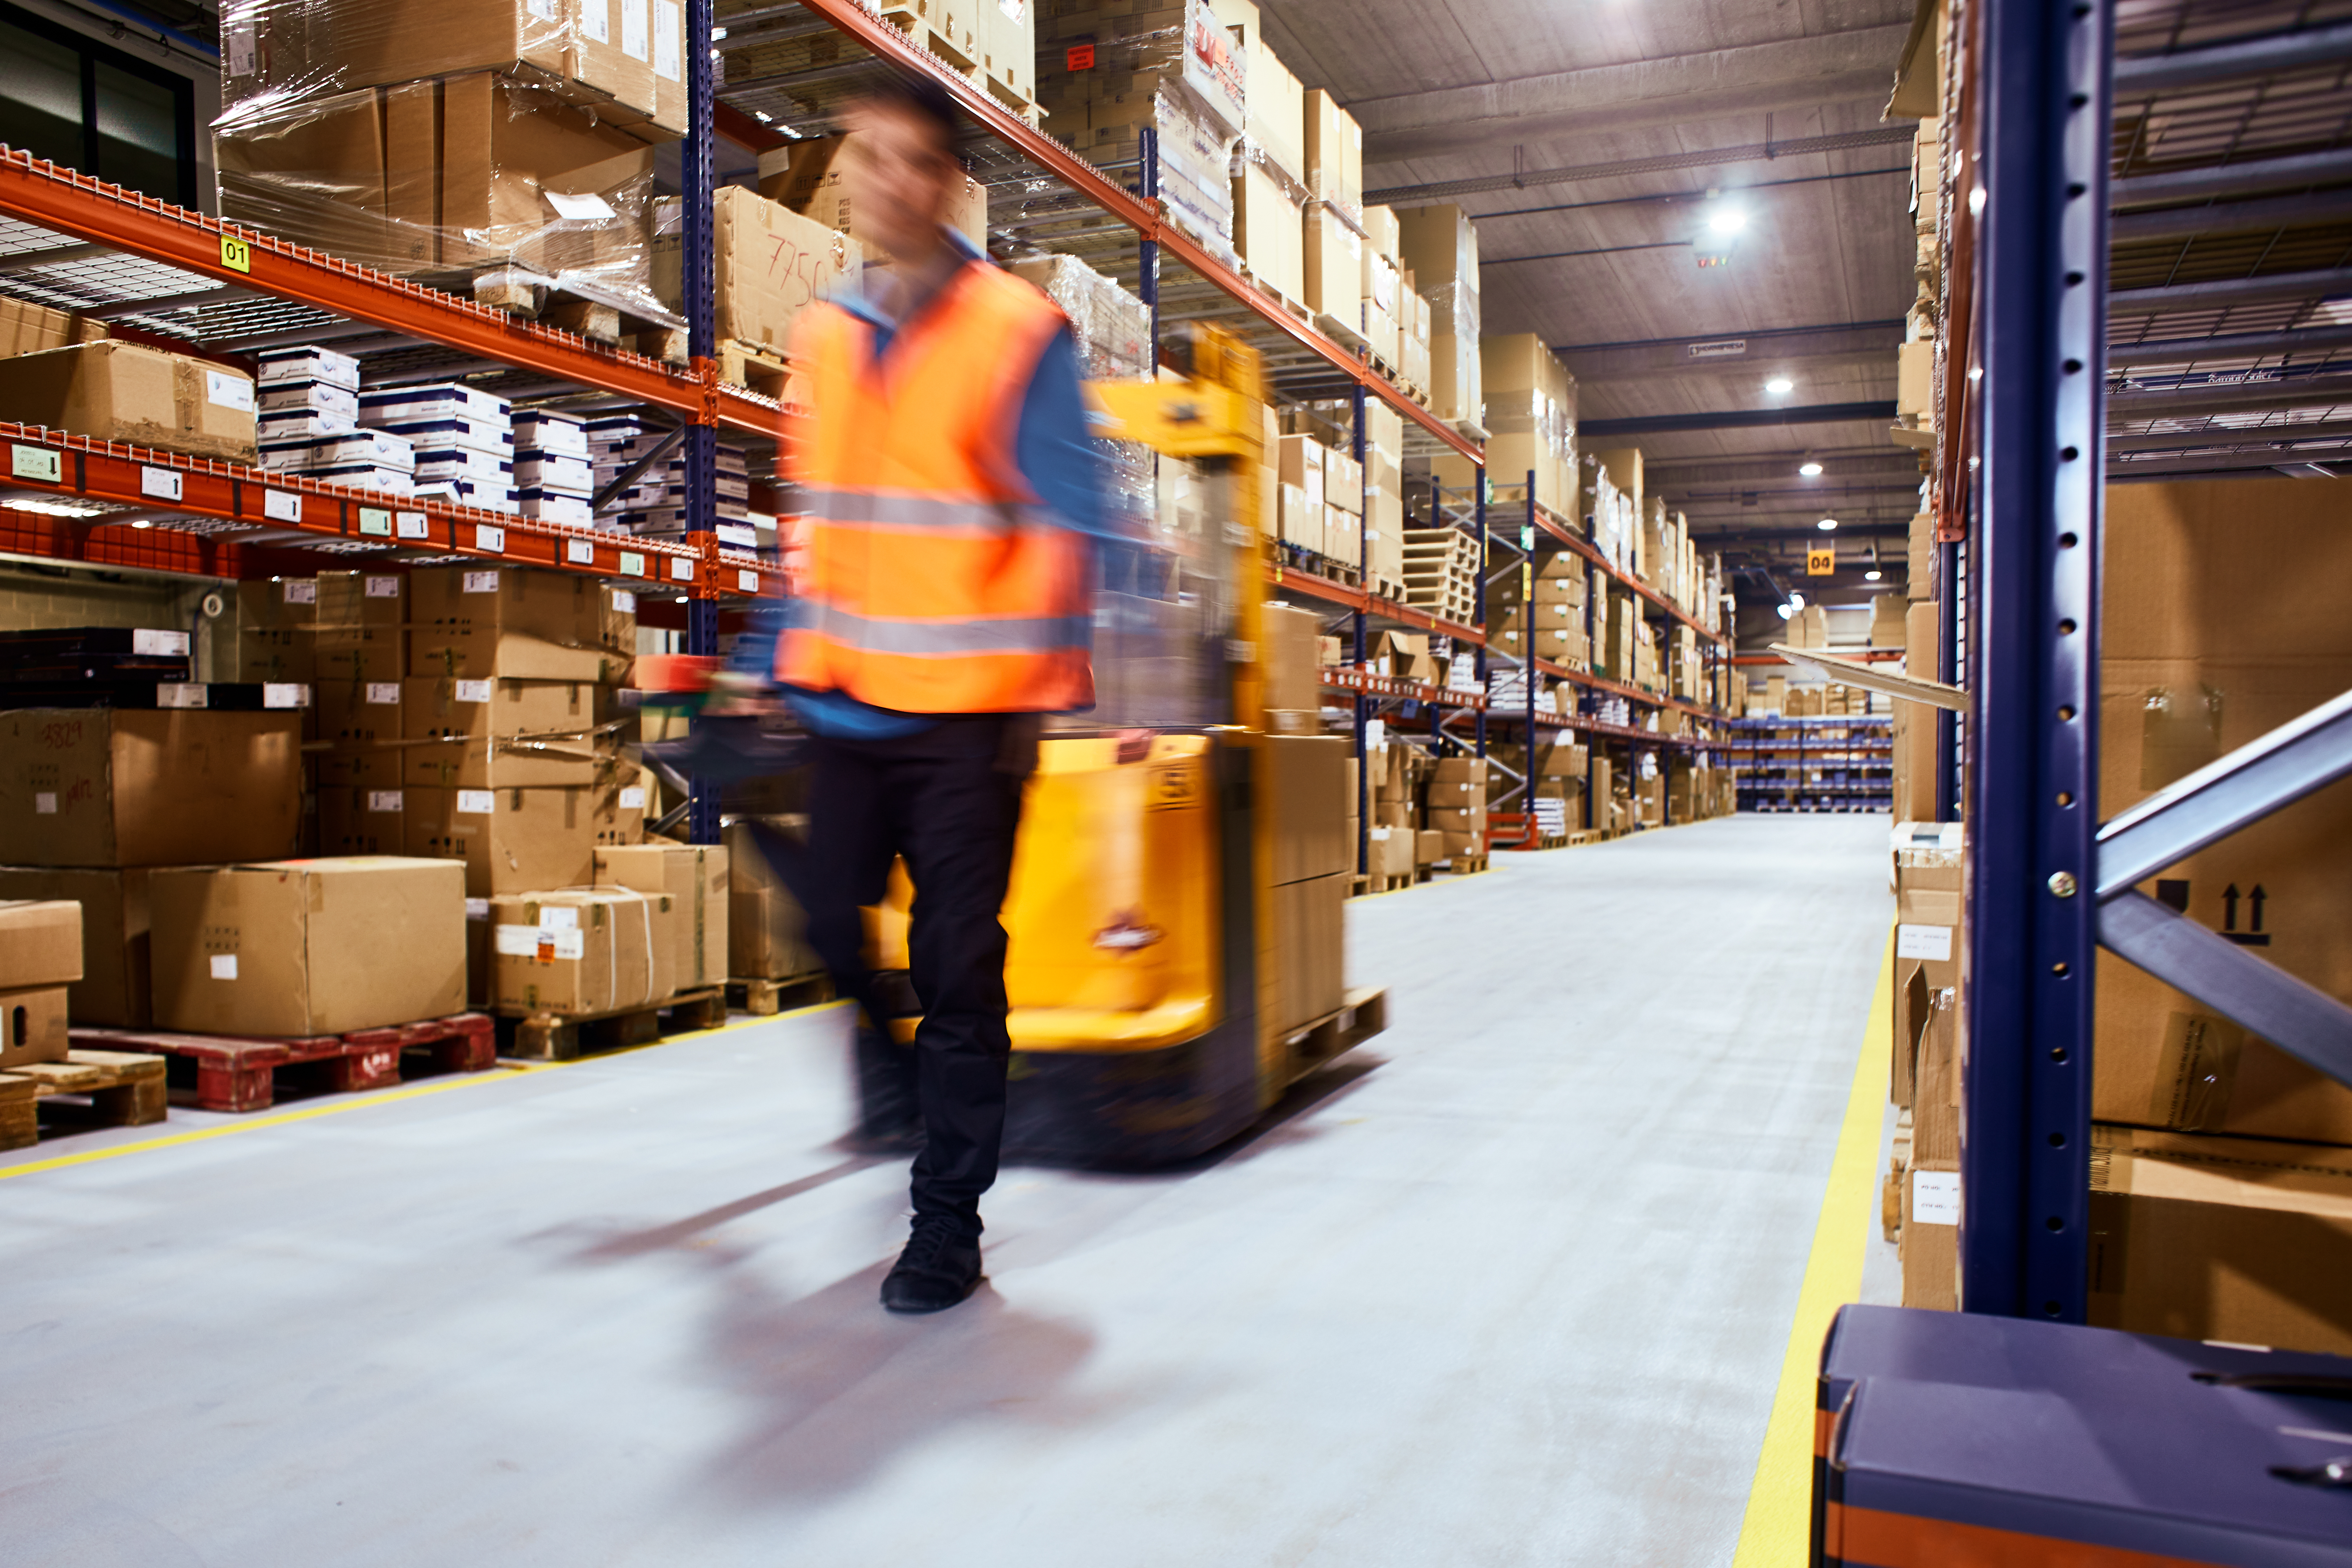 iStock-retail supply chain blur warehouse boxes